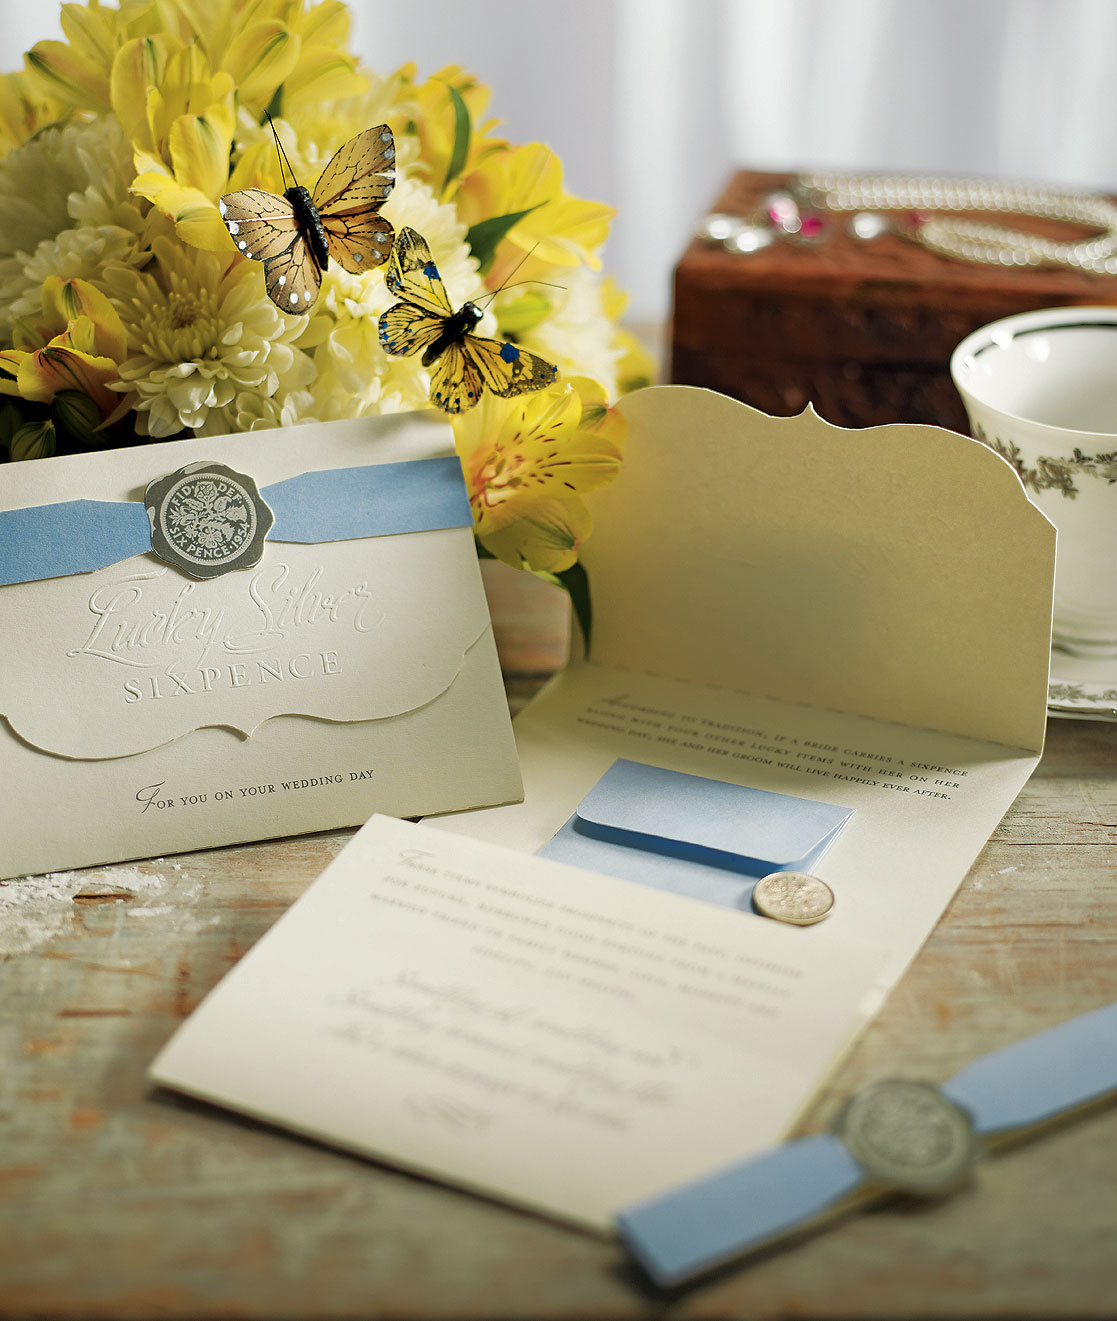 Lucky Wedding Gifts: Beverly Clark Lucky Bride Silver Sixpence Wedding Ceremony